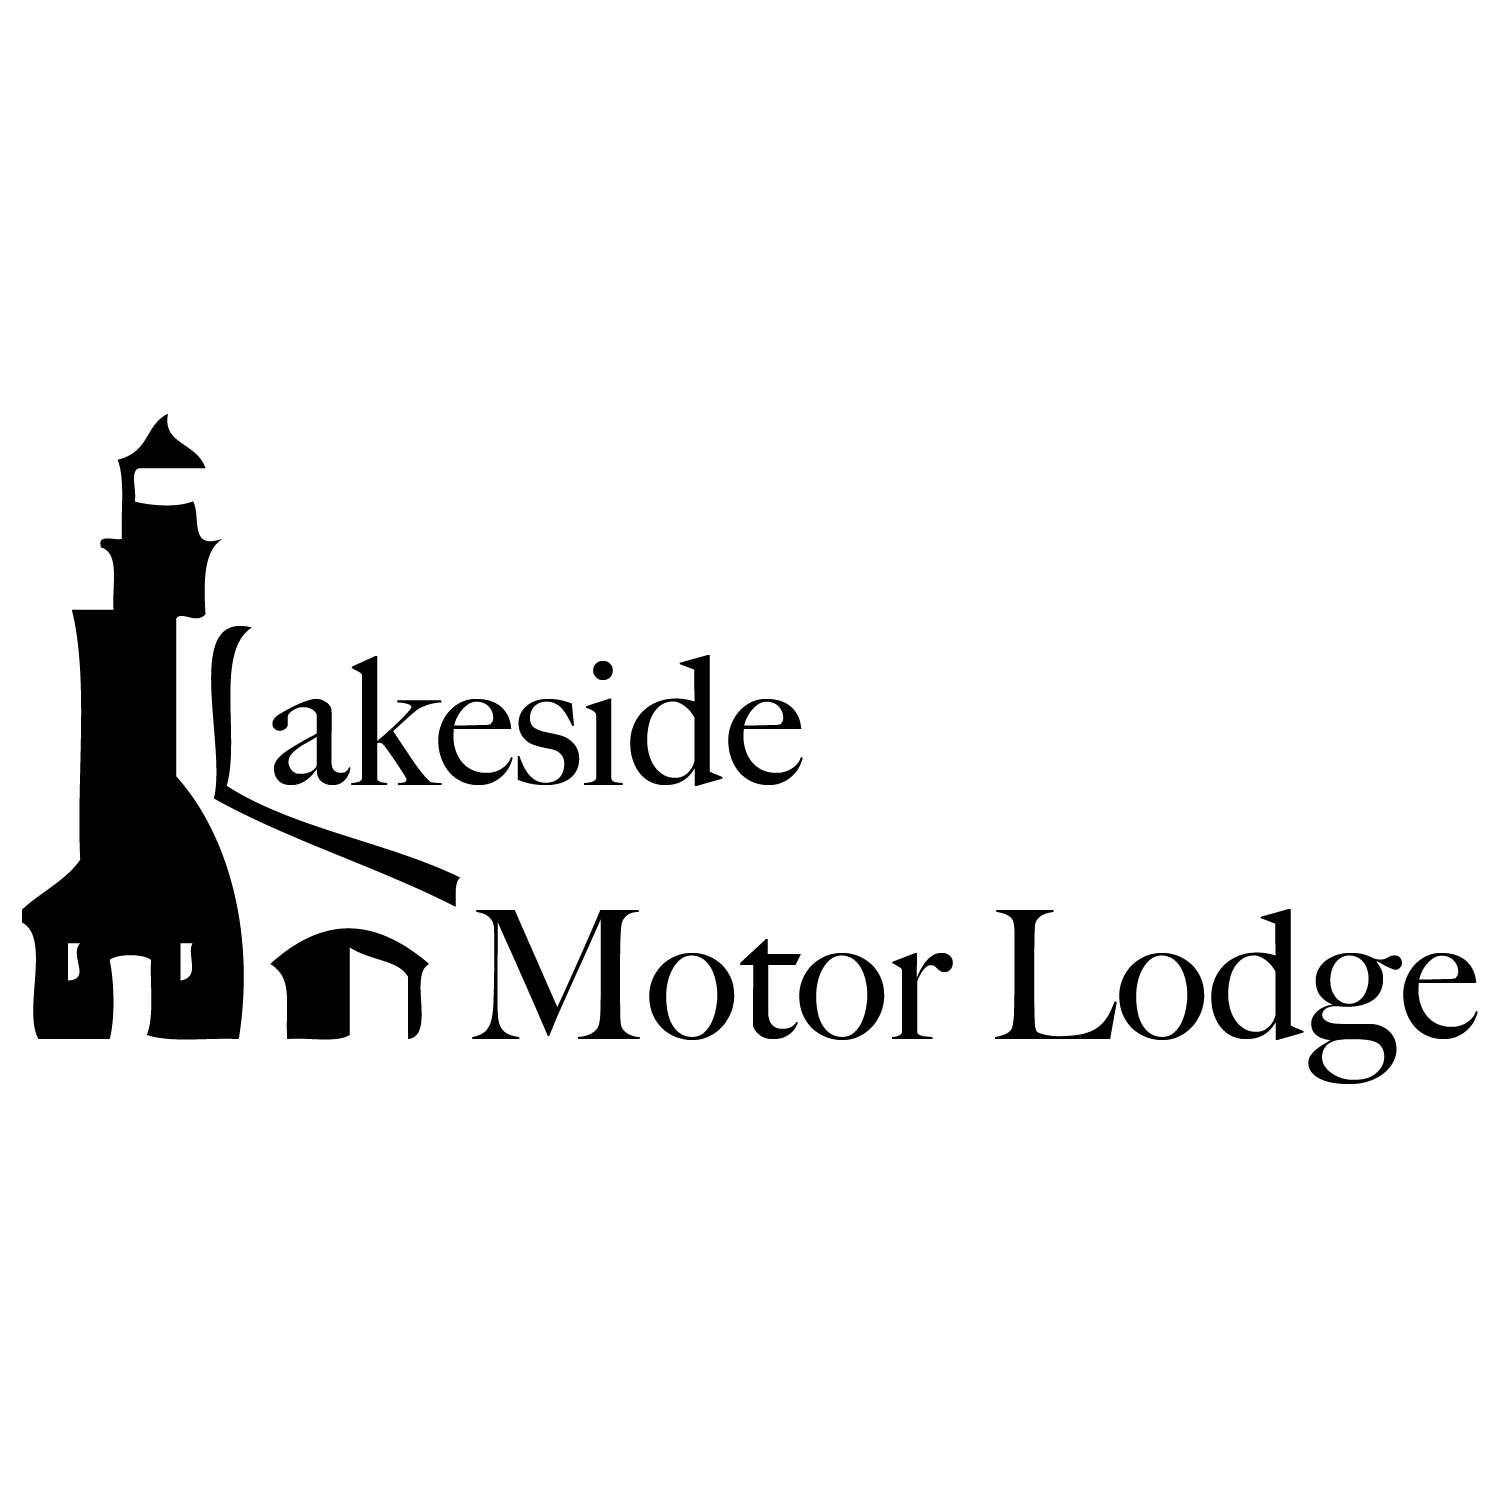 Lakeside Motor Lodge